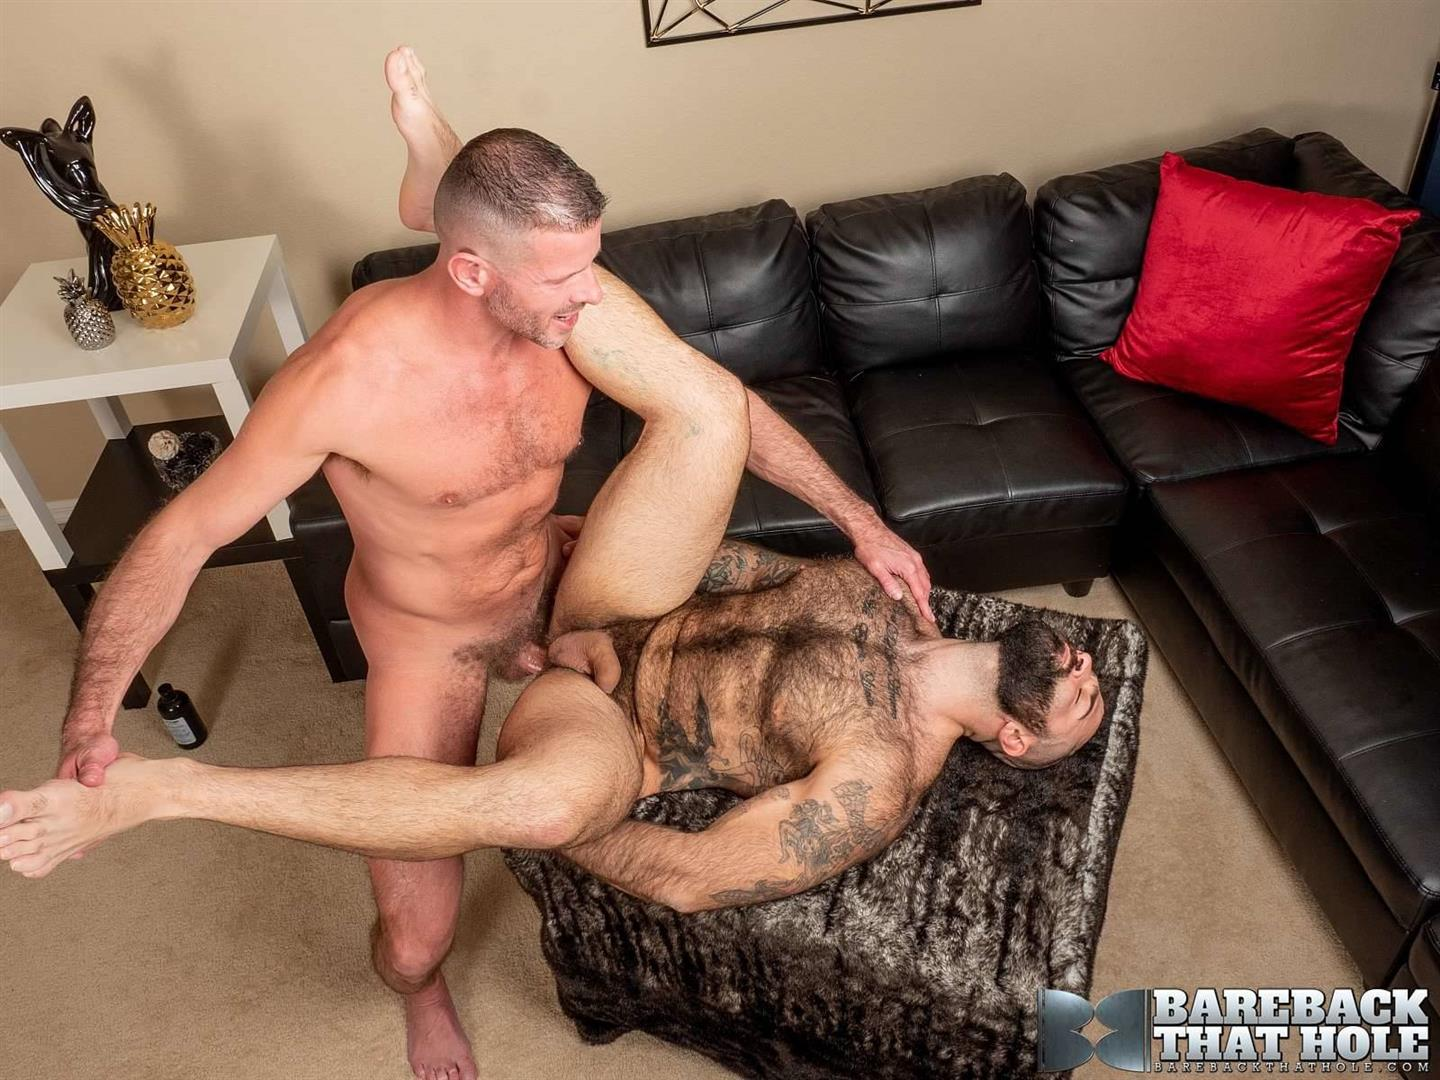 Bareback-That-Hole-Atlas-Grant-and-Clay-Towers-Big-Dick-Bareback-Flip-Gay-Sex-20 Big Dick Clay Towers Bareback Flipping With Hairy Muscle Bear Atlas Grant